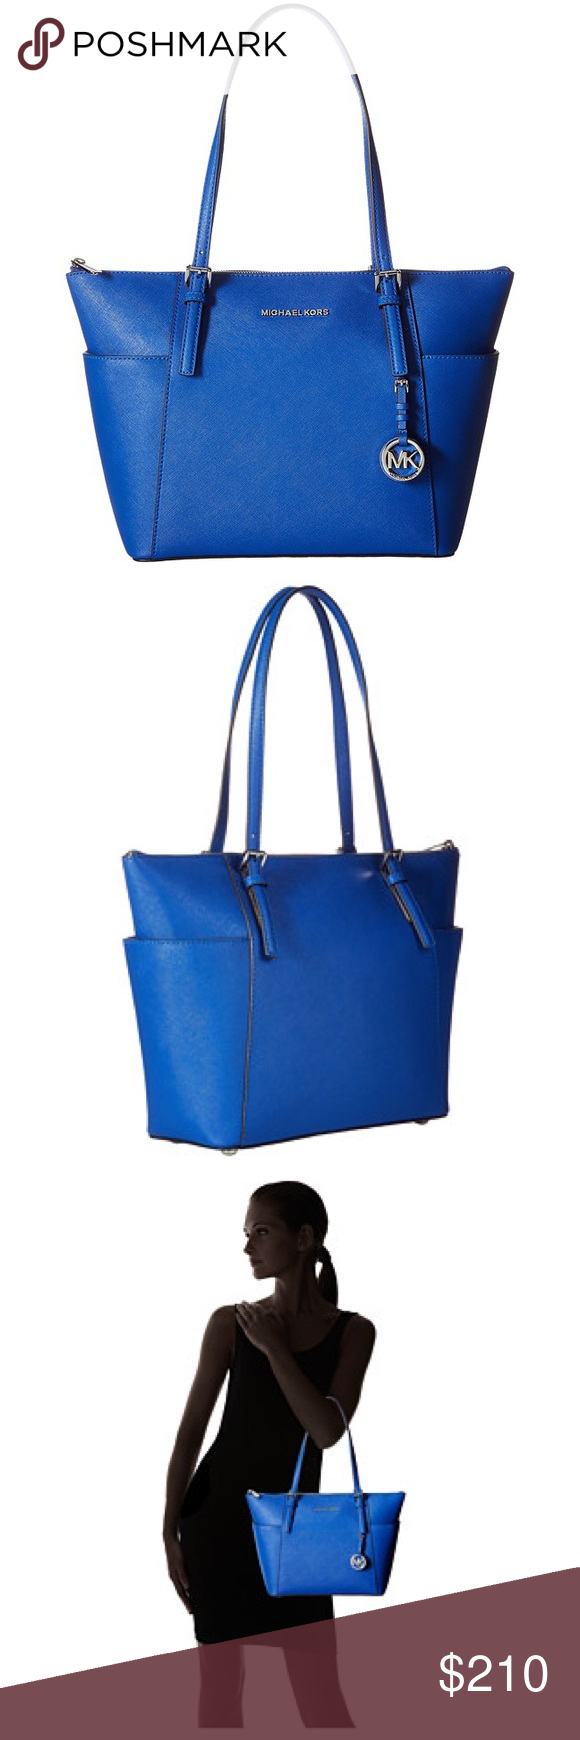 """Michael Kors Electric Blue Tote Brand new with tags! Absolutely stunning! Comes with dust bag. Measures 15"""" (at longest point) by 10.25"""" by 4.25"""".  Please feel free to make an offer. 😊 Michael Kors Bags"""